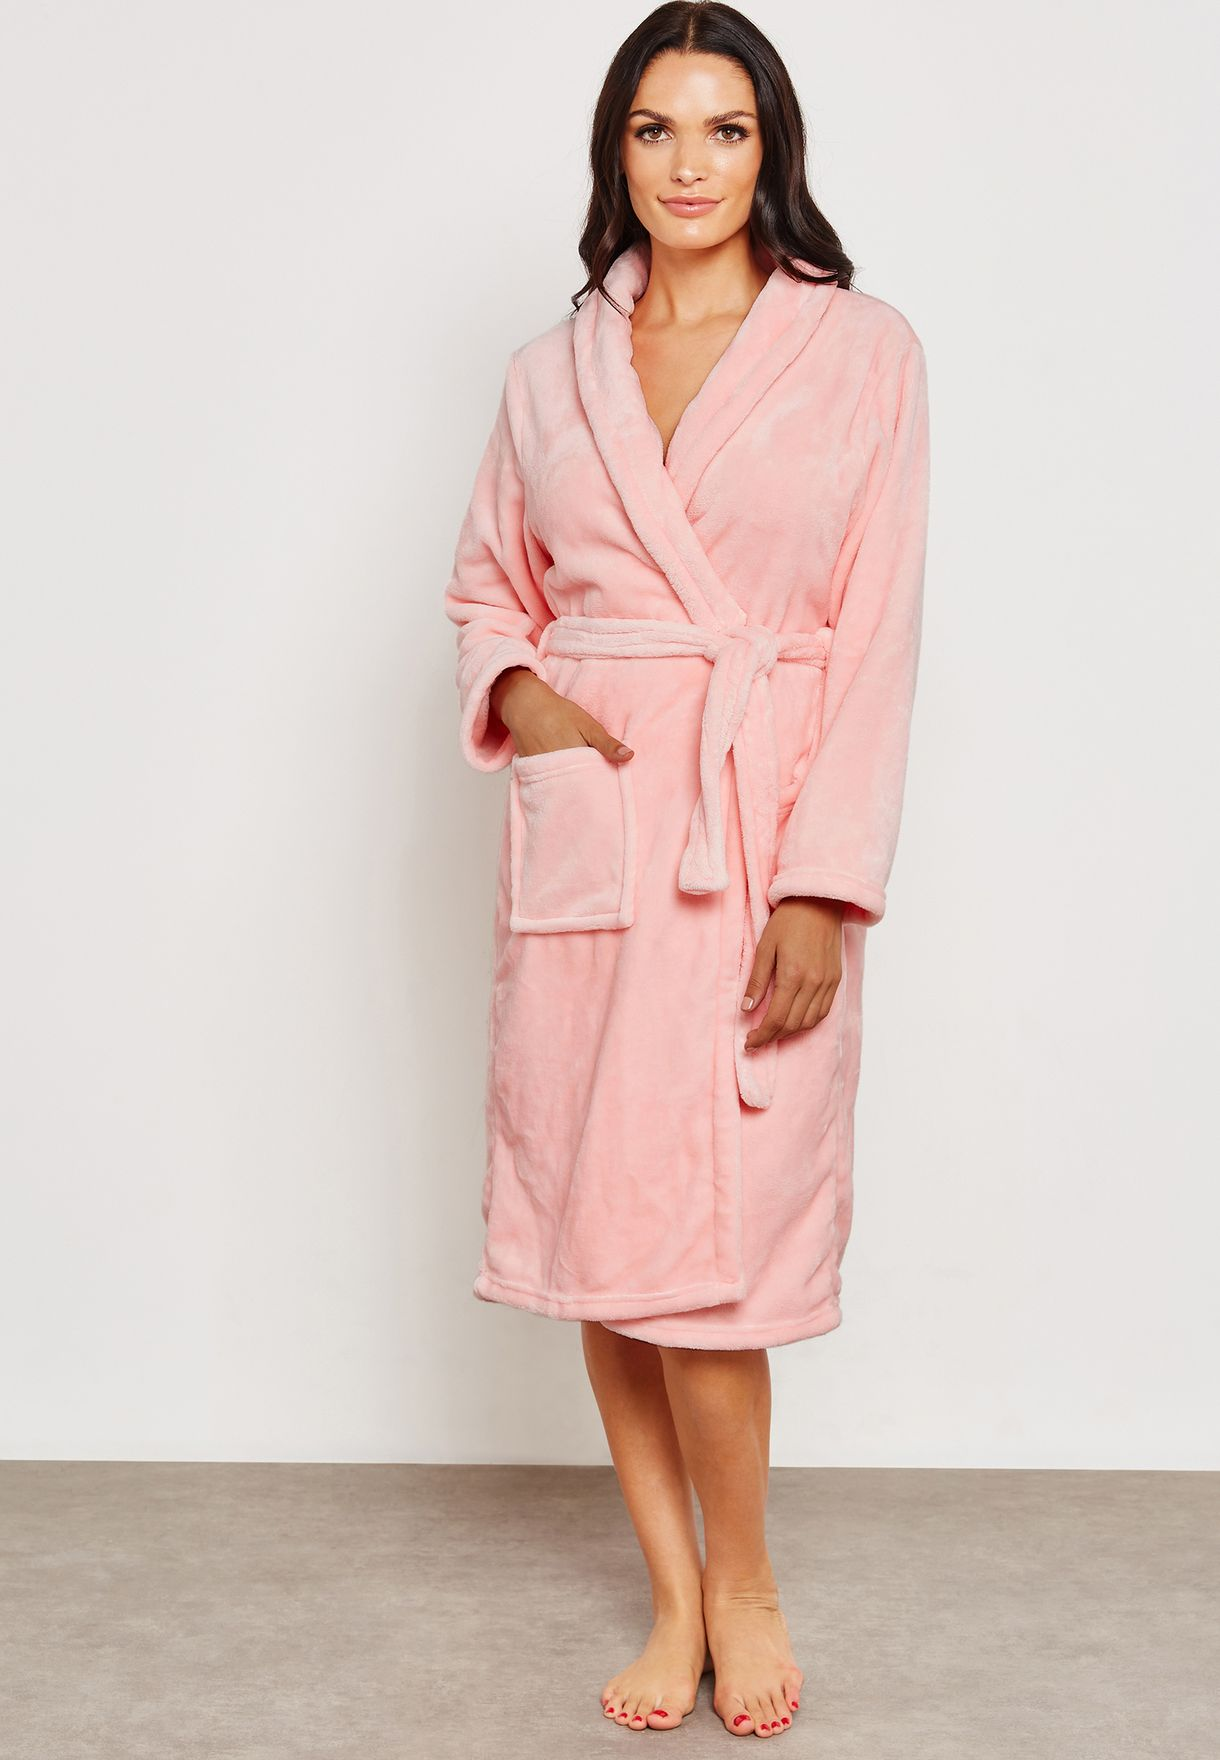 13a36b425aac Shop Lounge District pink Soft Fleece Robe G27 for Women in Qatar -  LO950AT99DVC